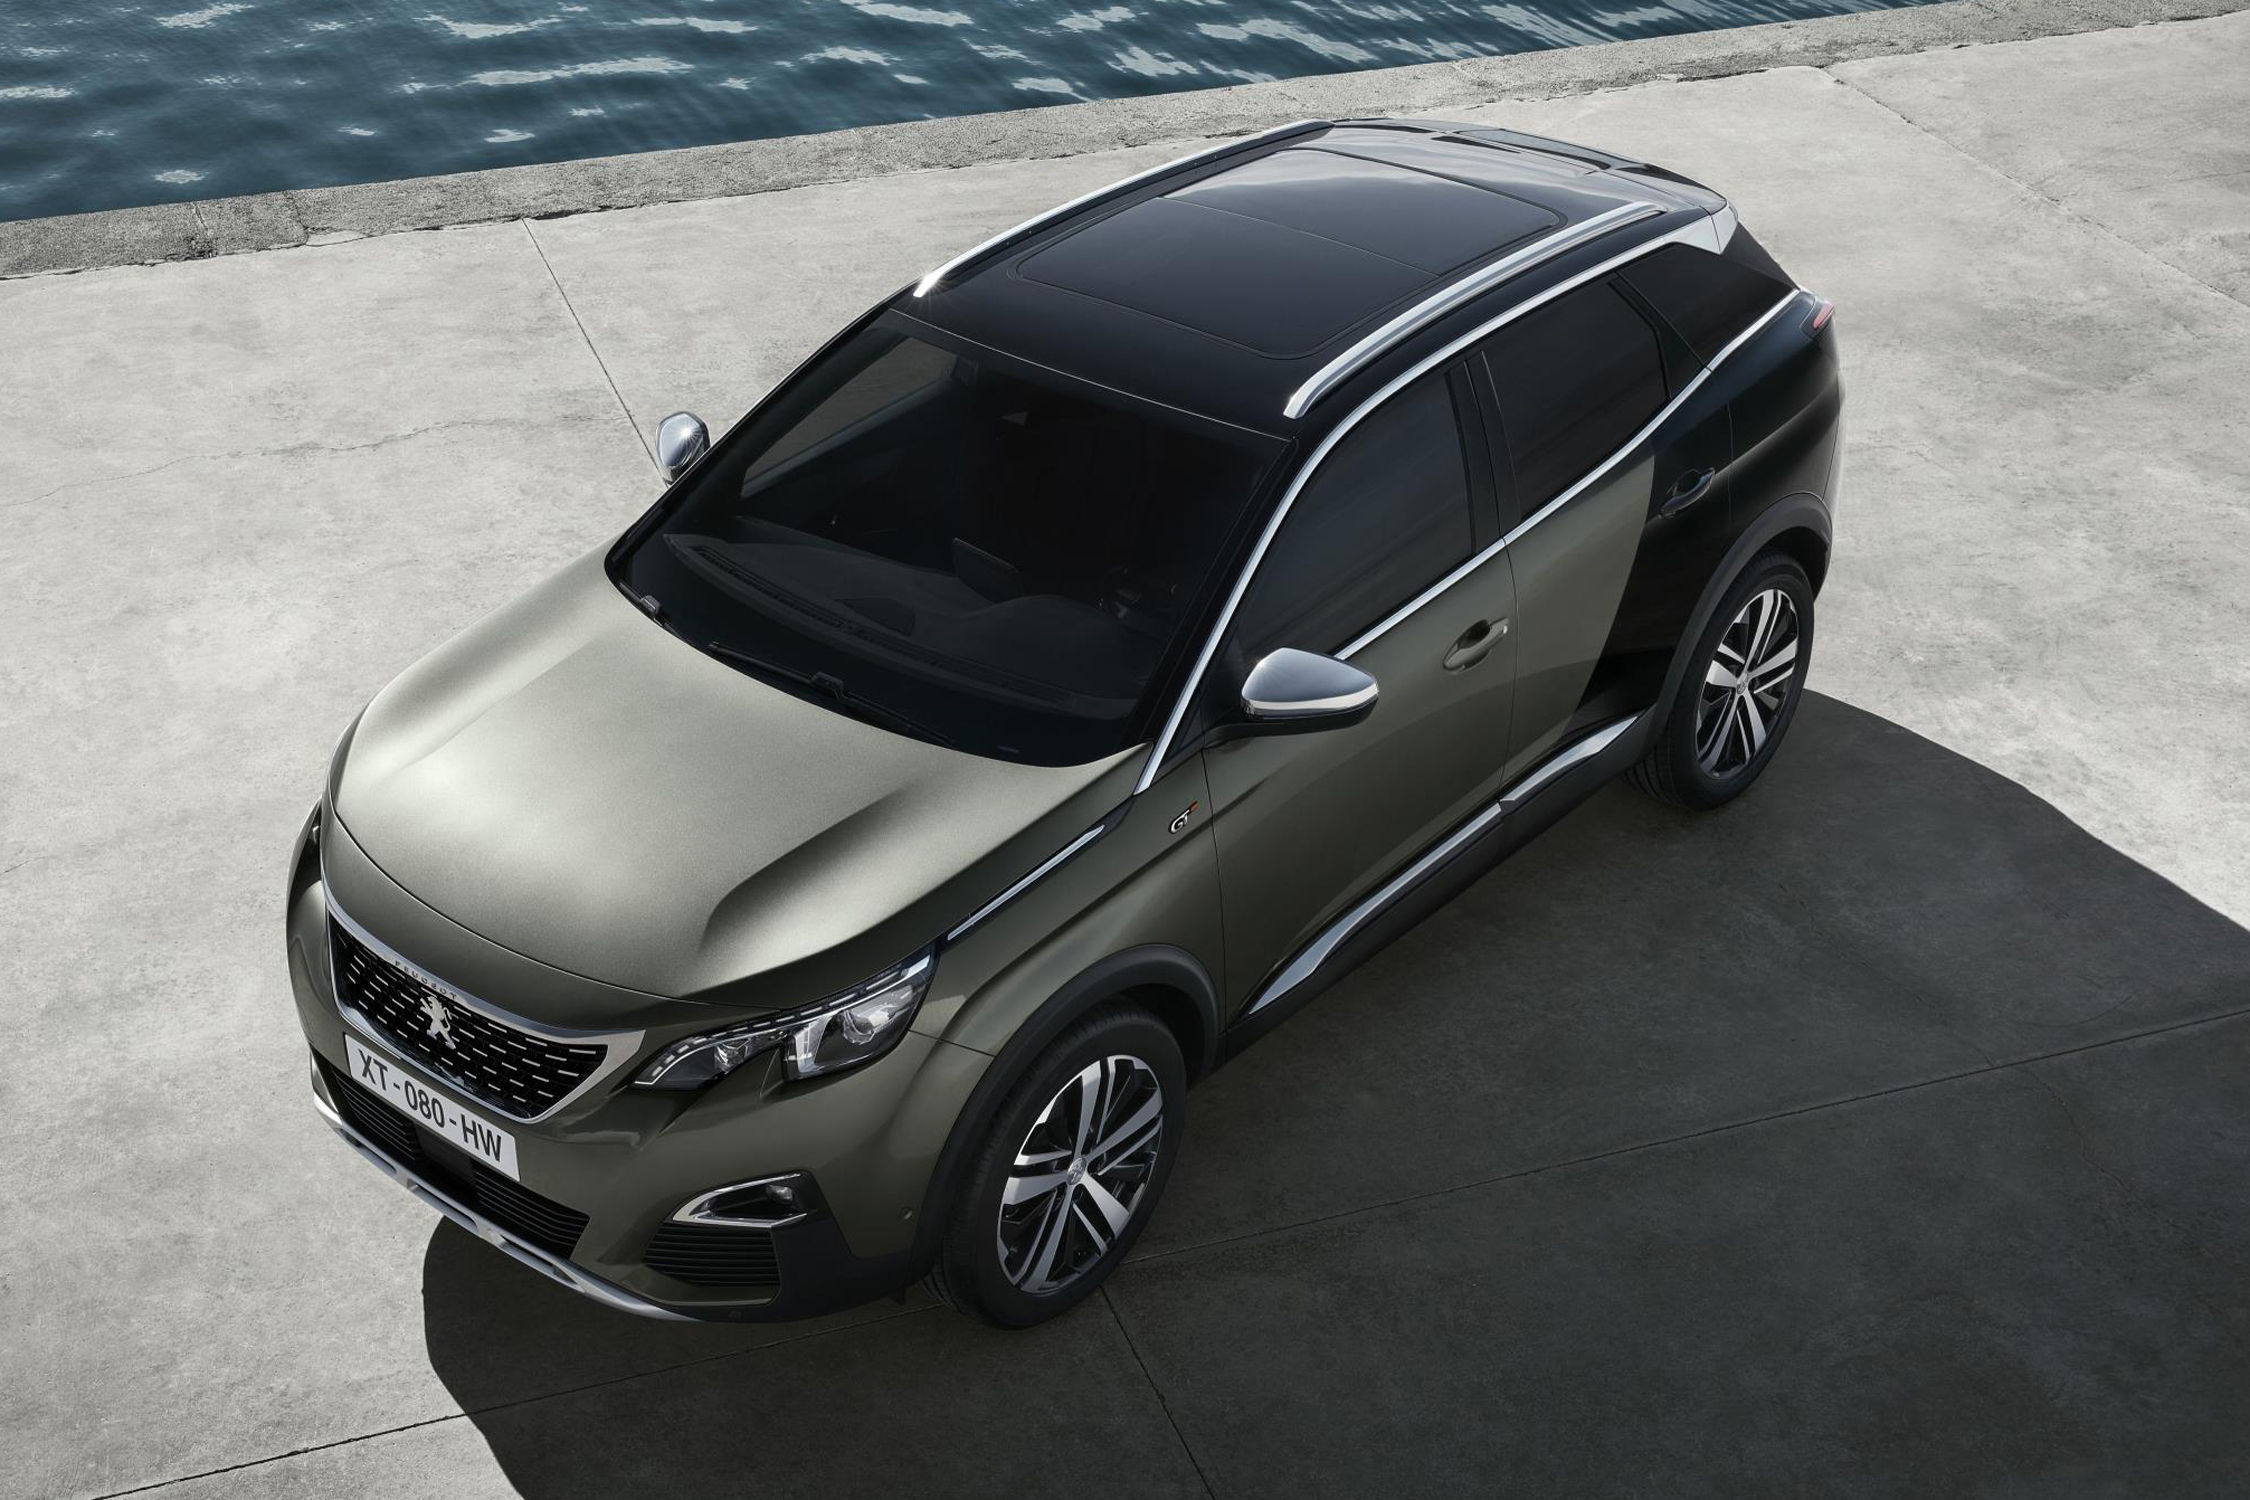 peugeot 3008 gt la sportivit en plus actualit automobile motorlegend. Black Bedroom Furniture Sets. Home Design Ideas